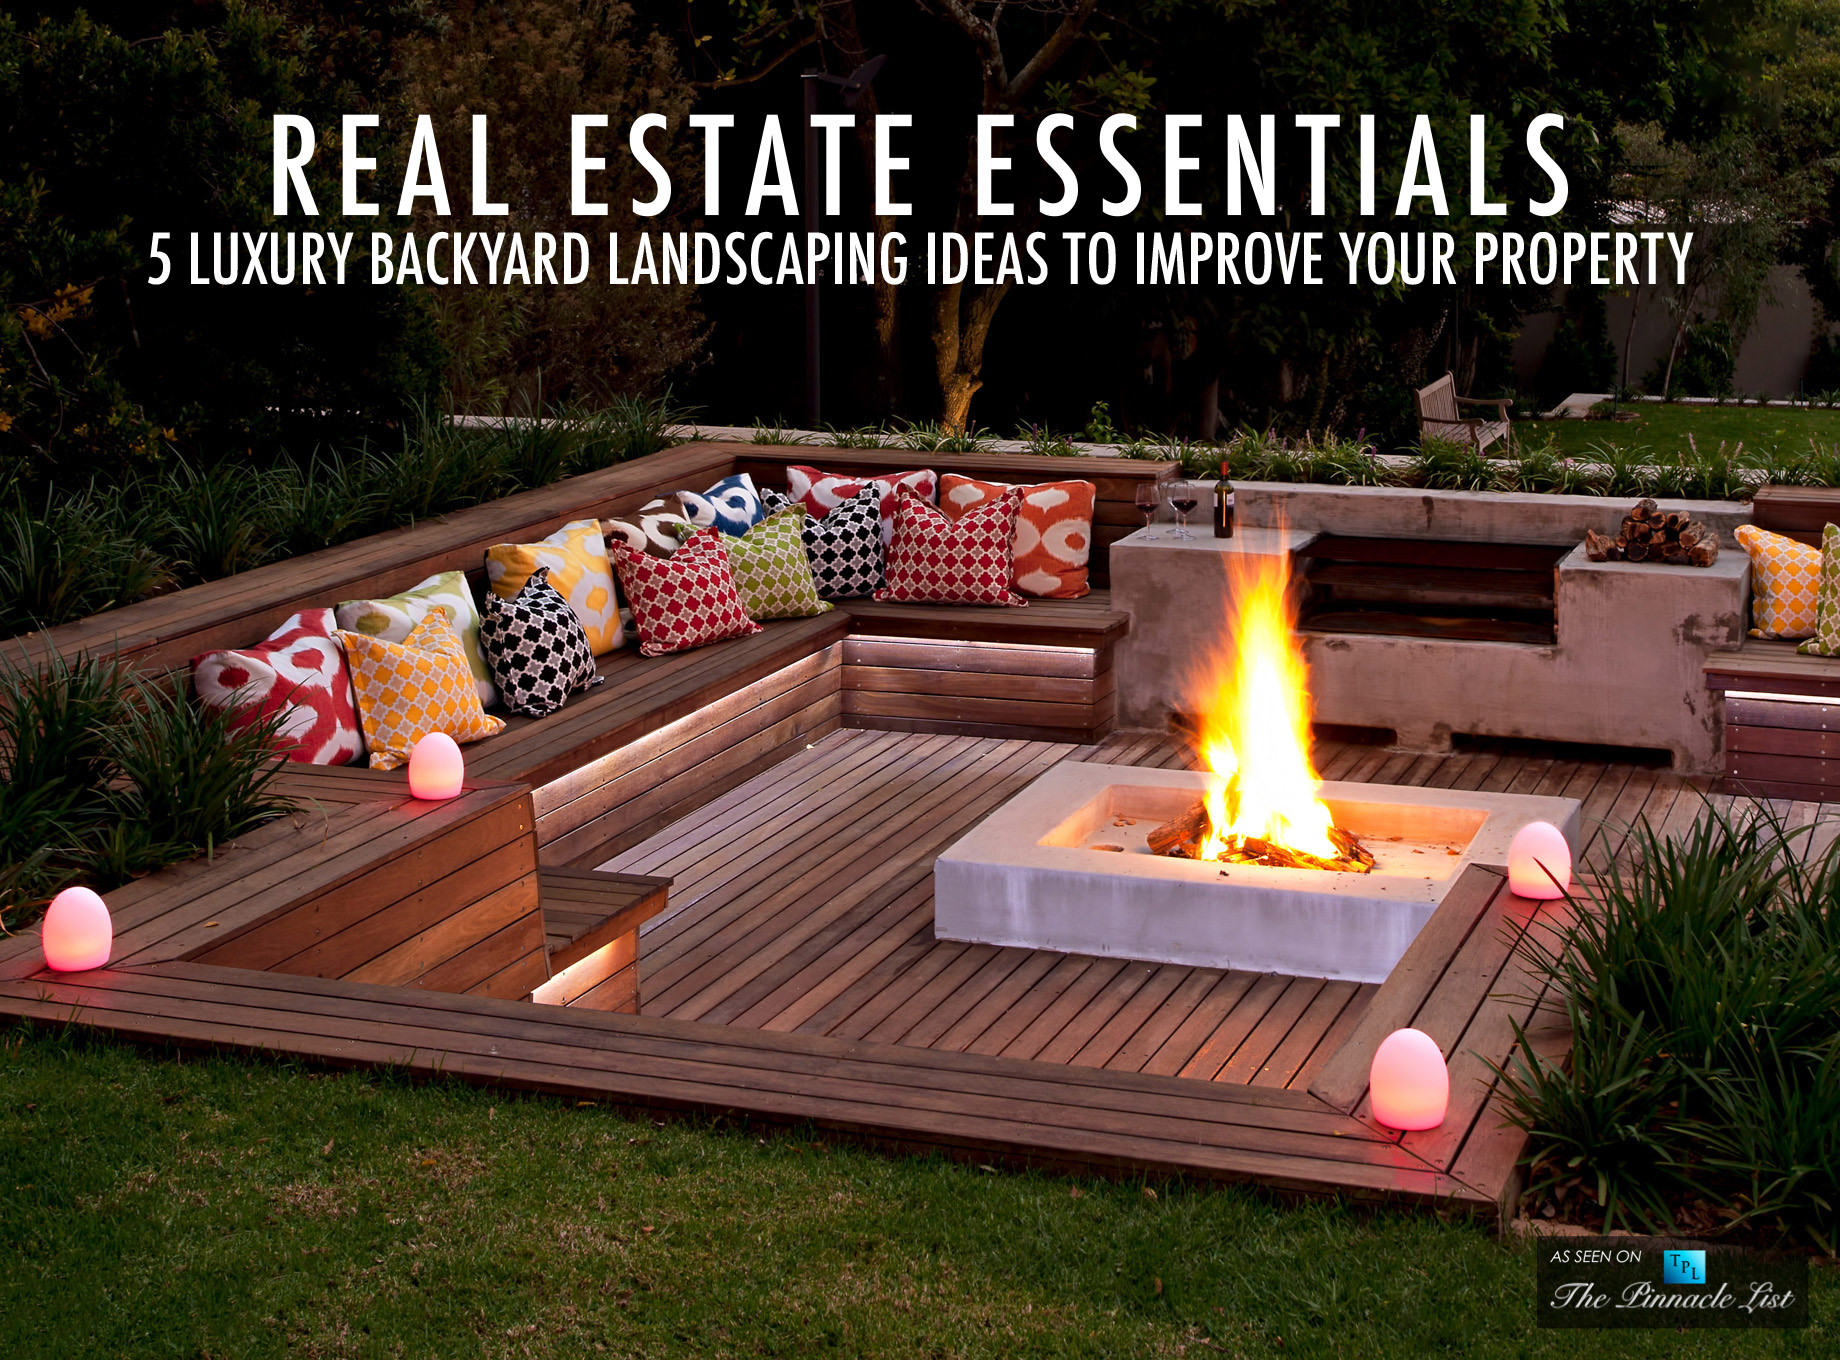 Real Estate Essentials 5 Luxury Backyard Landscaping Ideas intended for Backyard Pictures Ideas